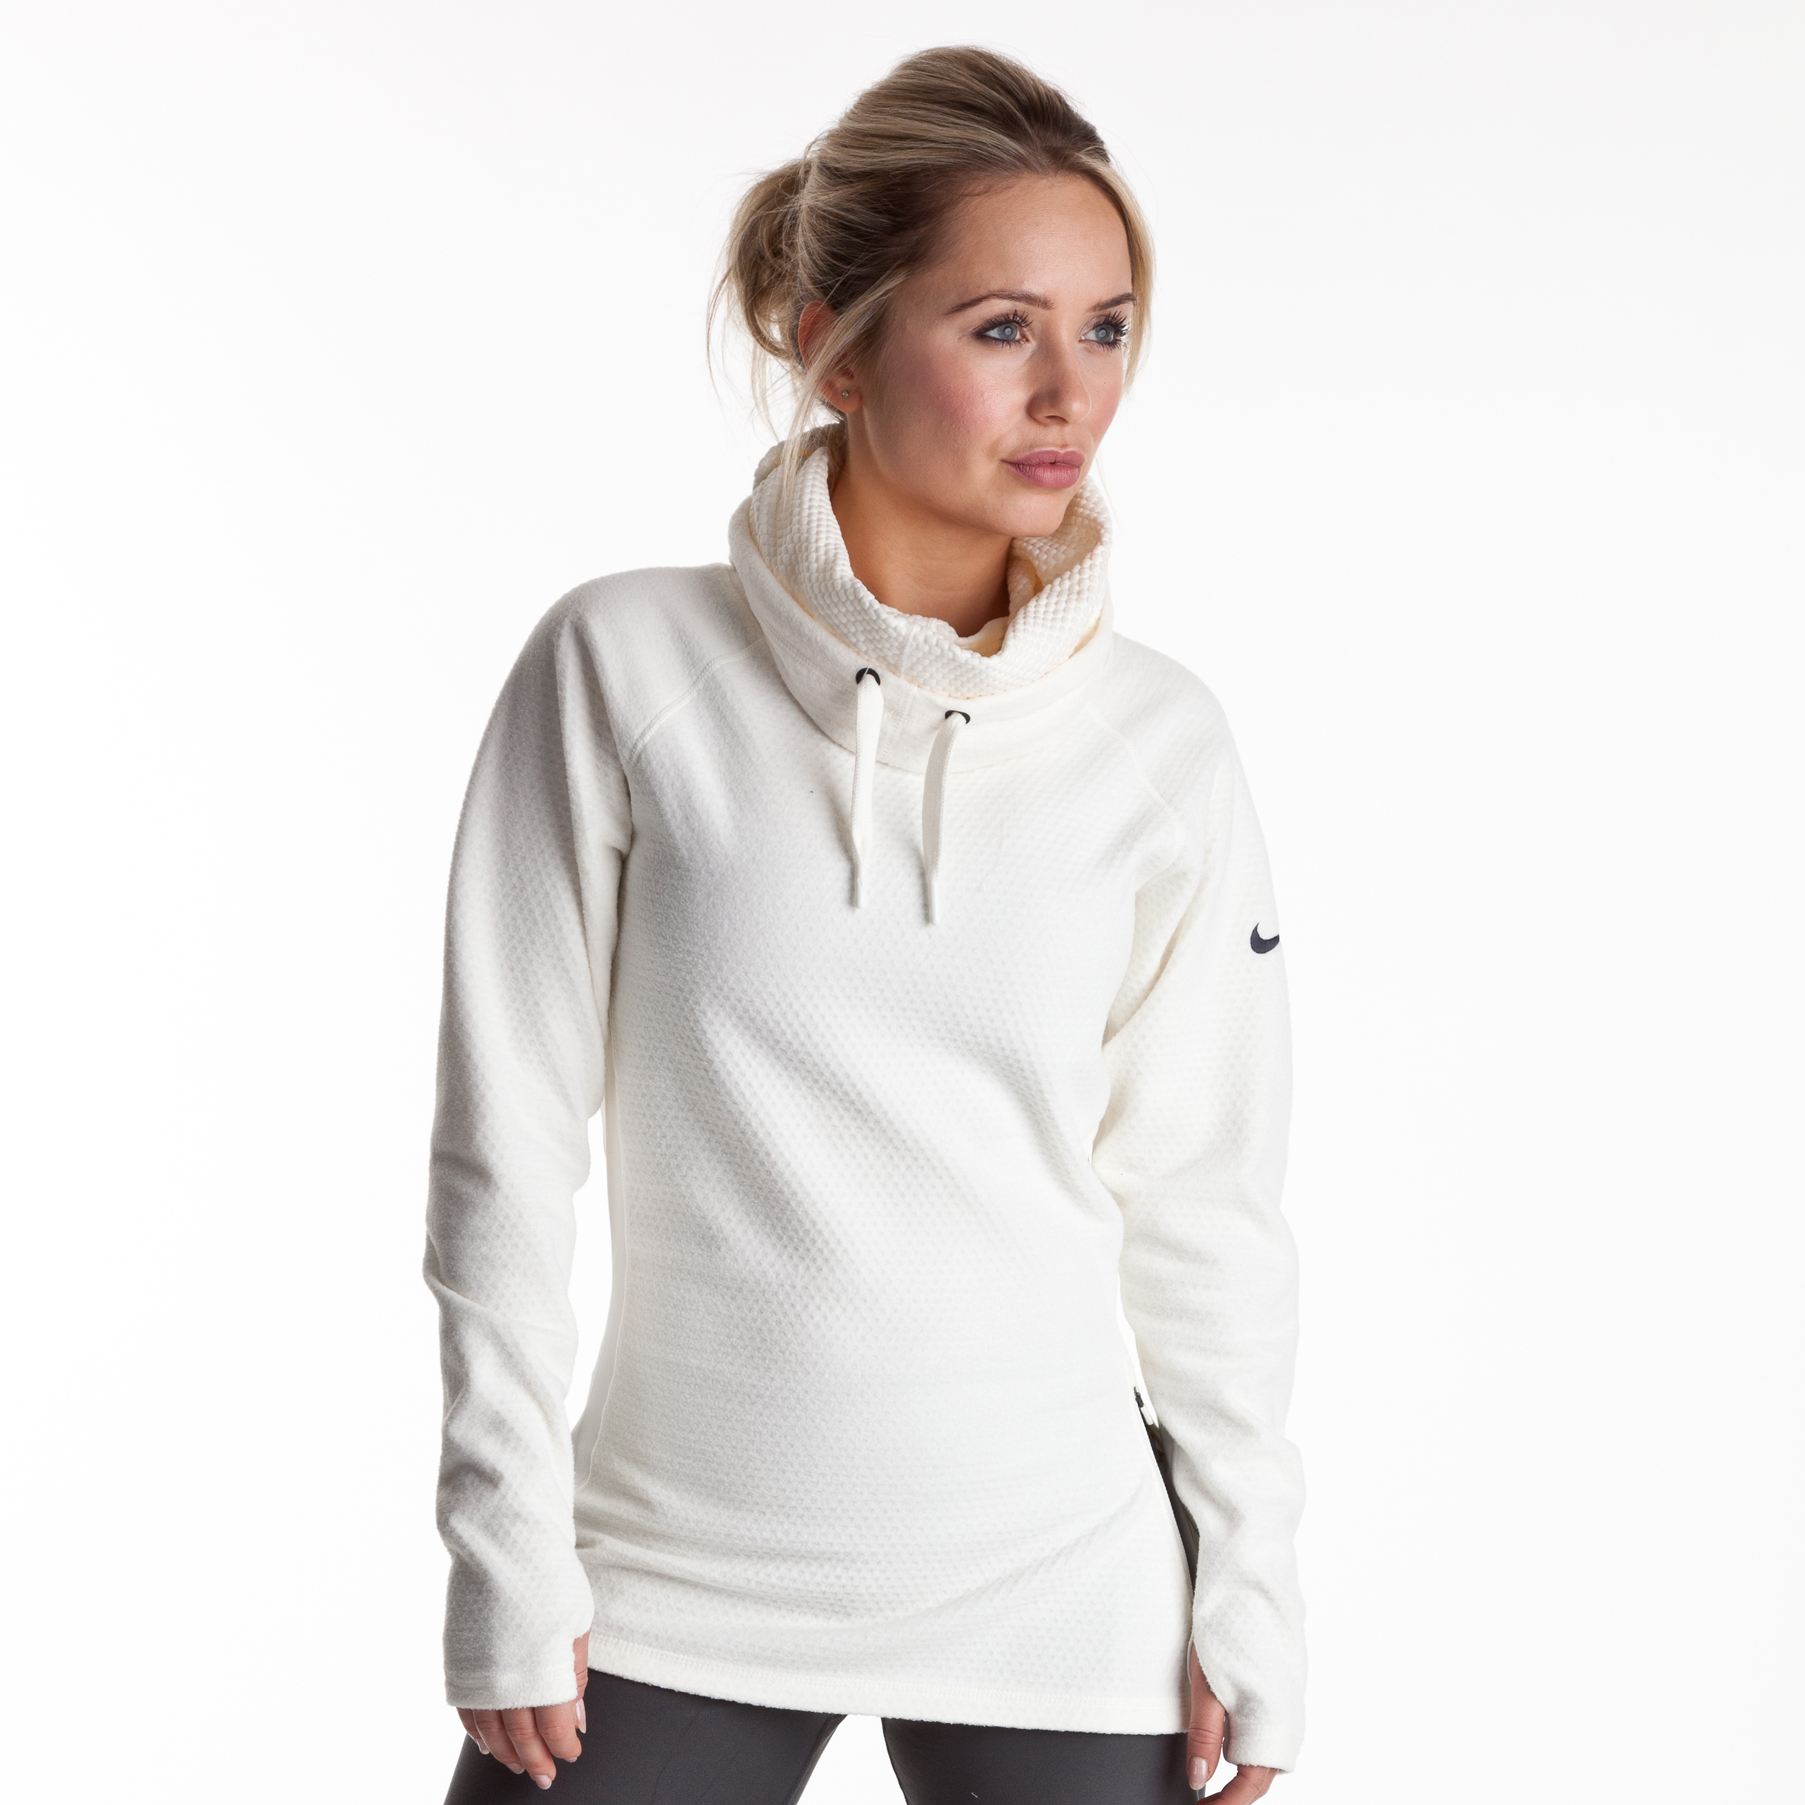 Nike Slouchy Sphere Hoody - Sail/Anthracite - Womens